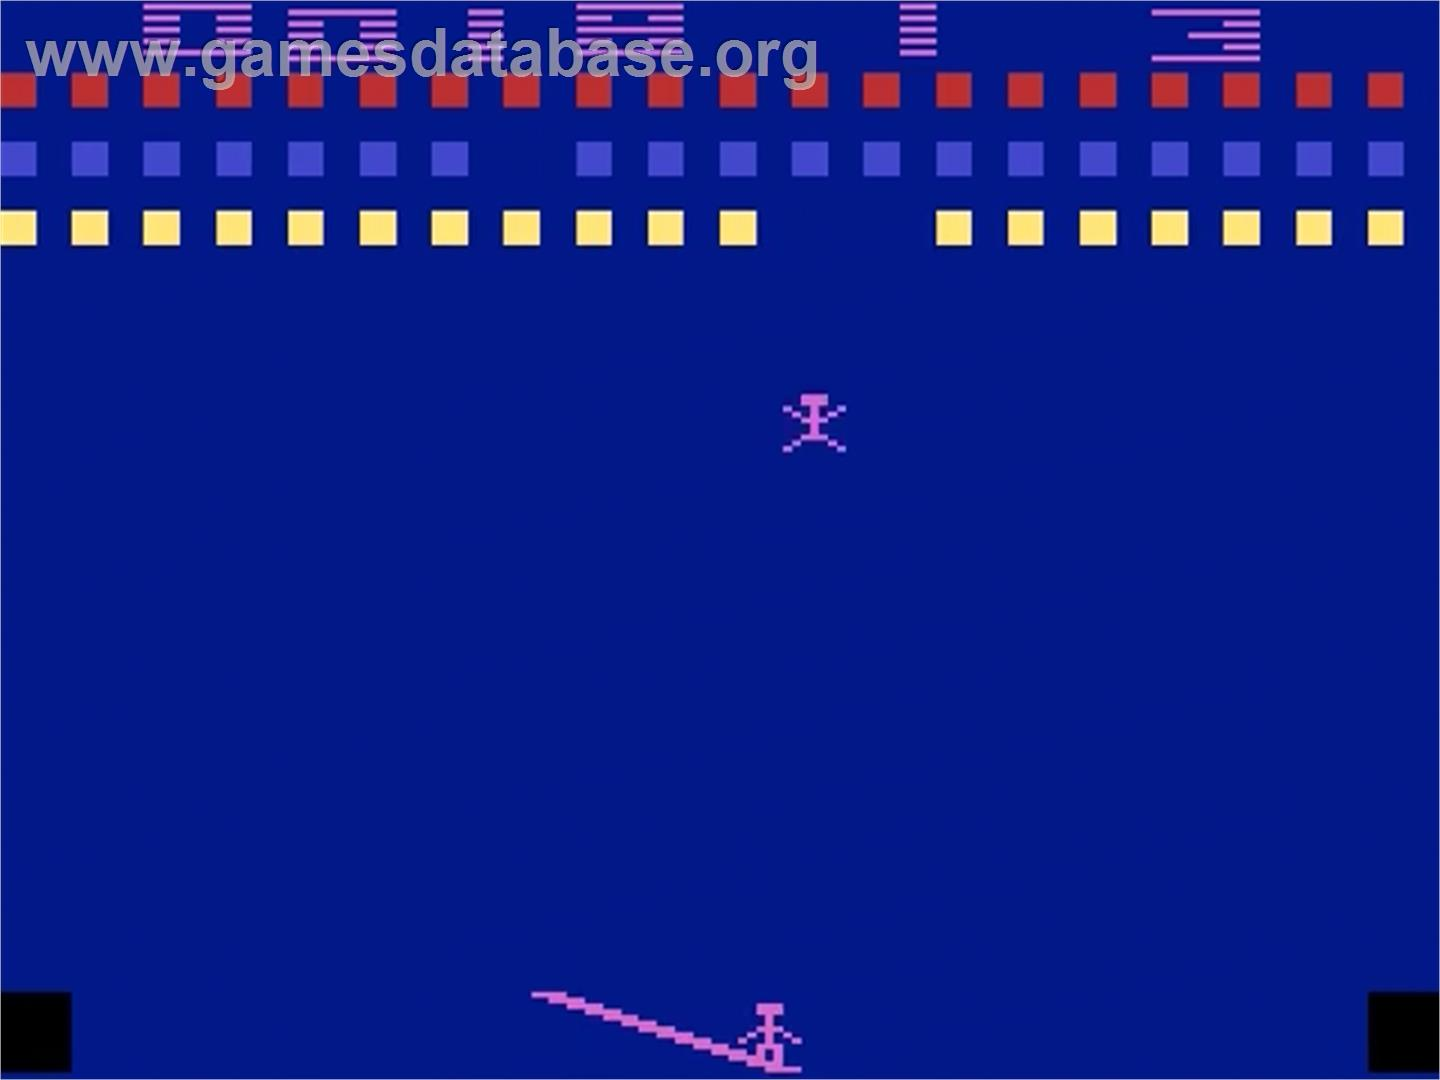 Circus Atari - Atari 2600 - Artwork - In Game